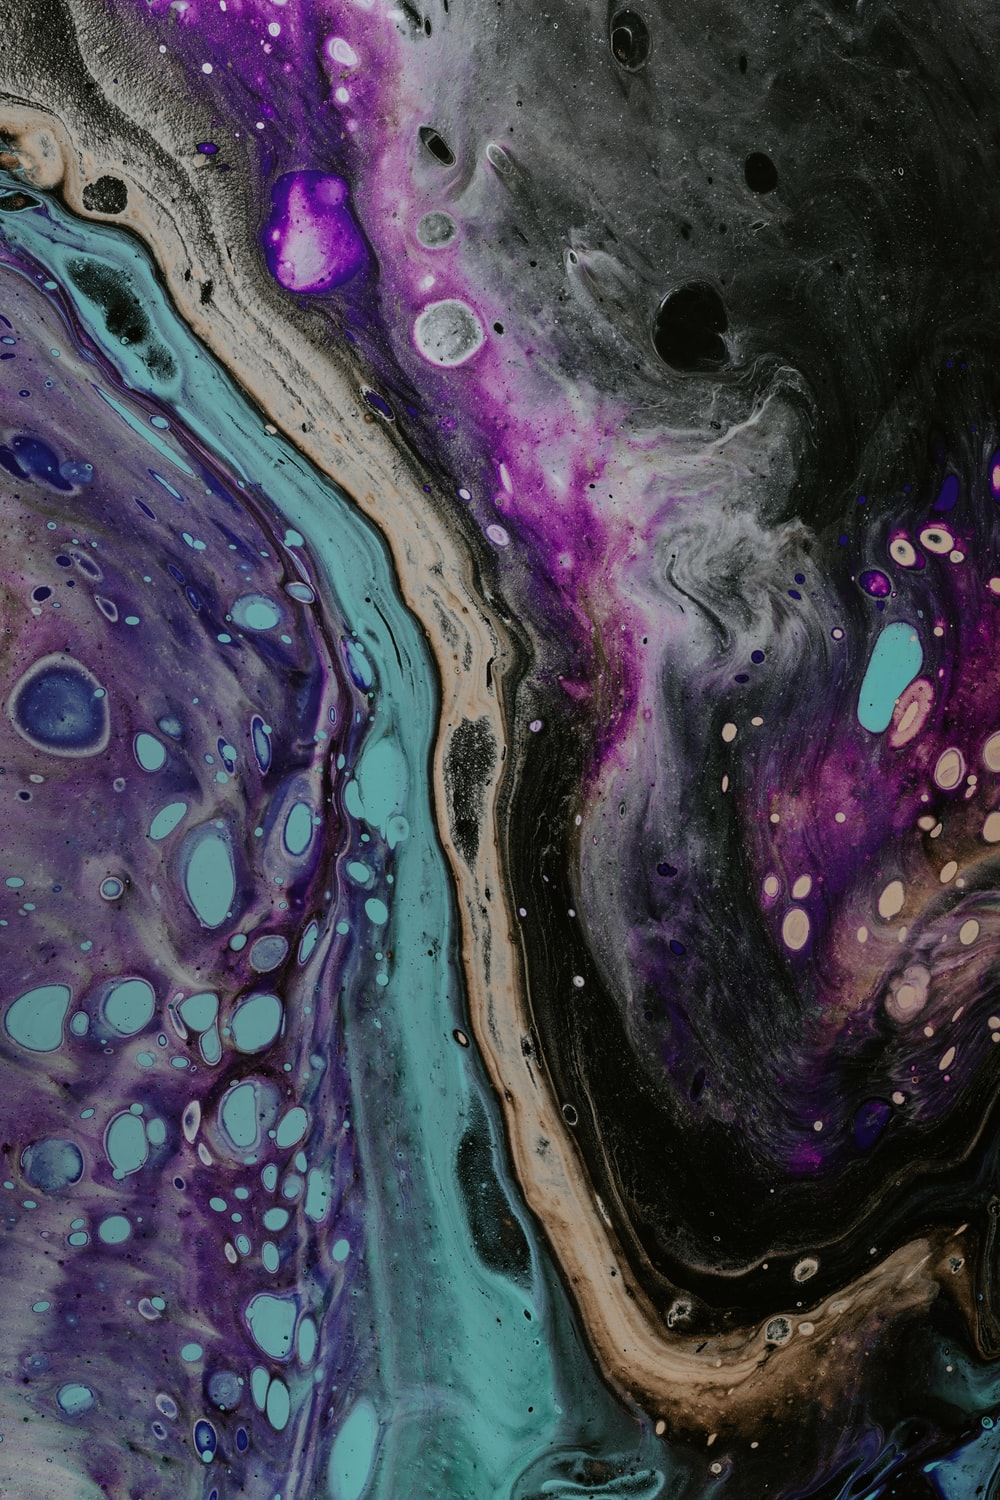 blue, purple, and teal abstract painting